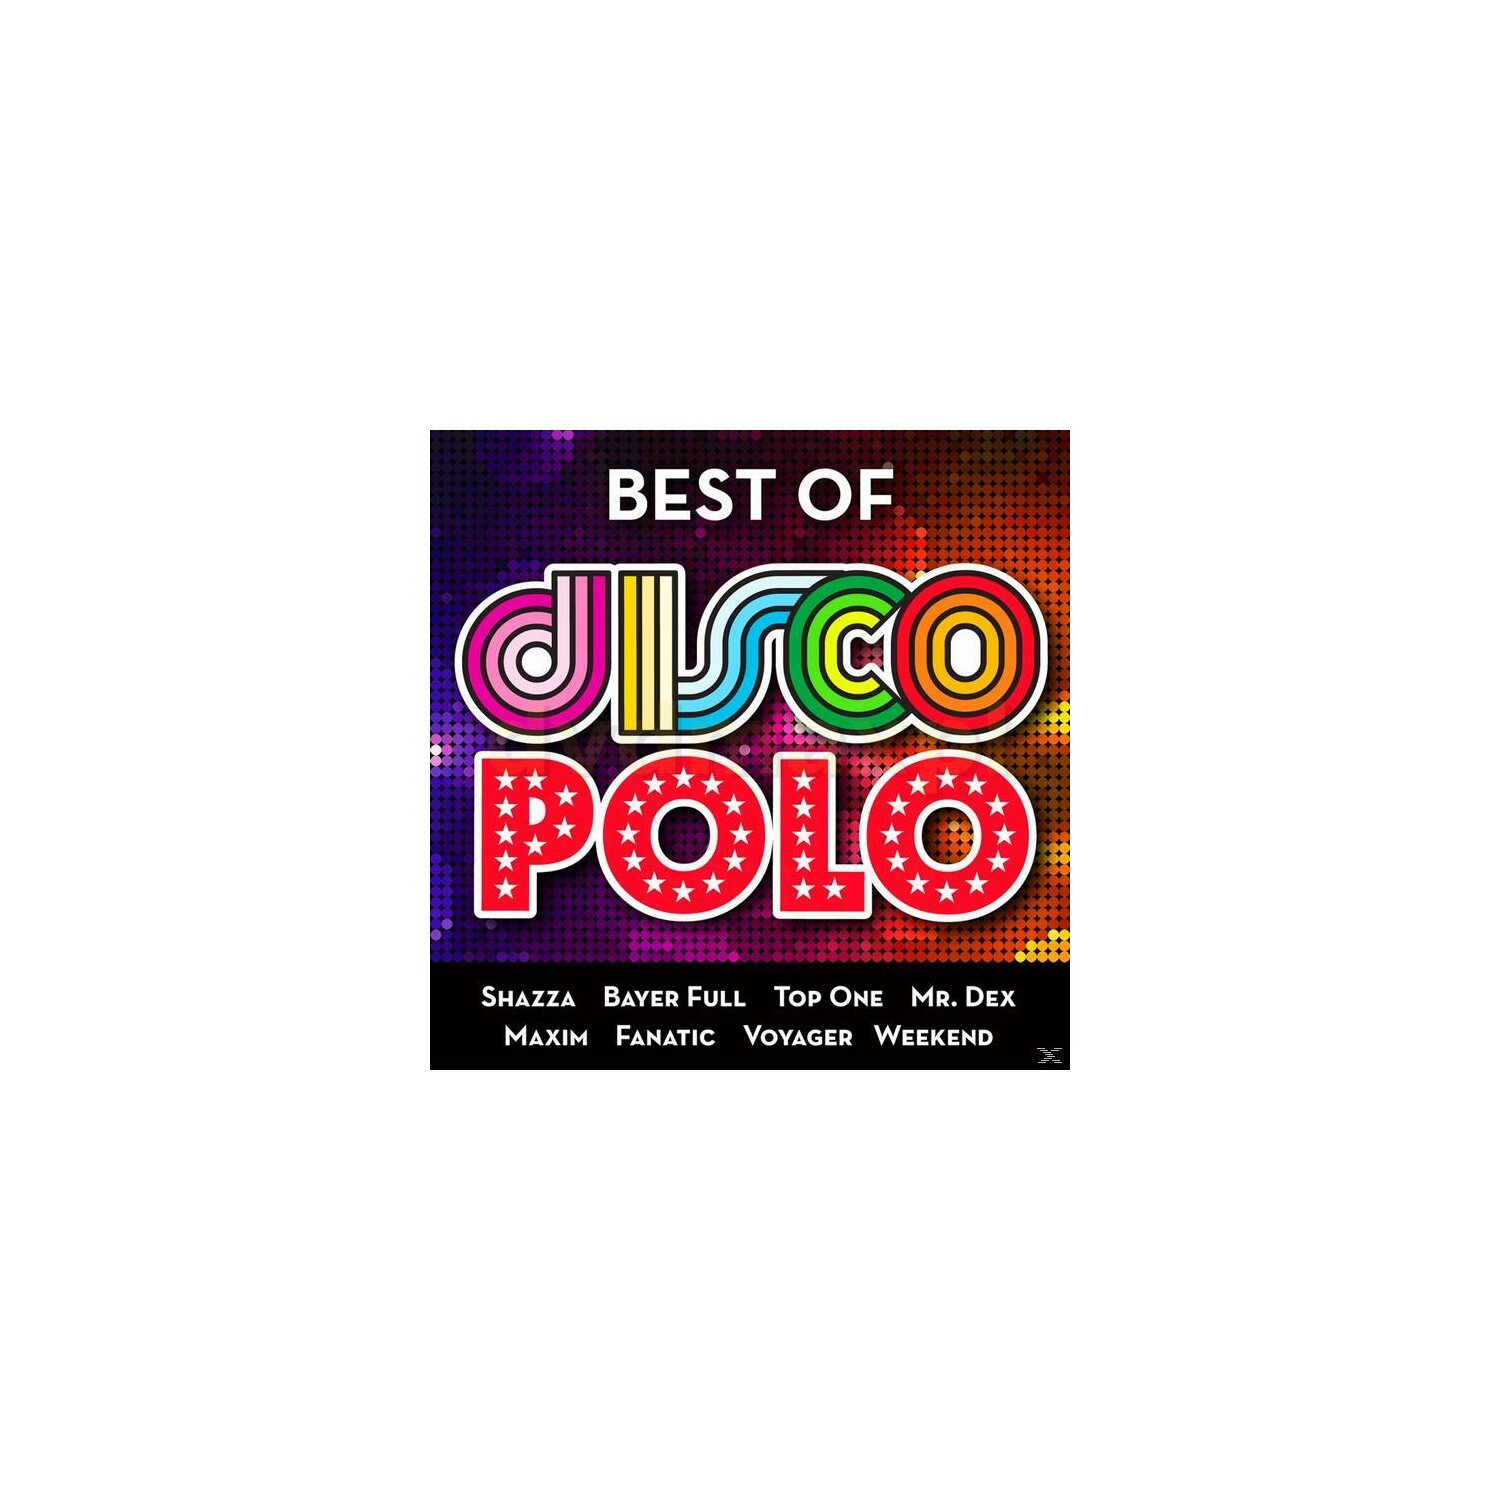 Best Of Disco Polo